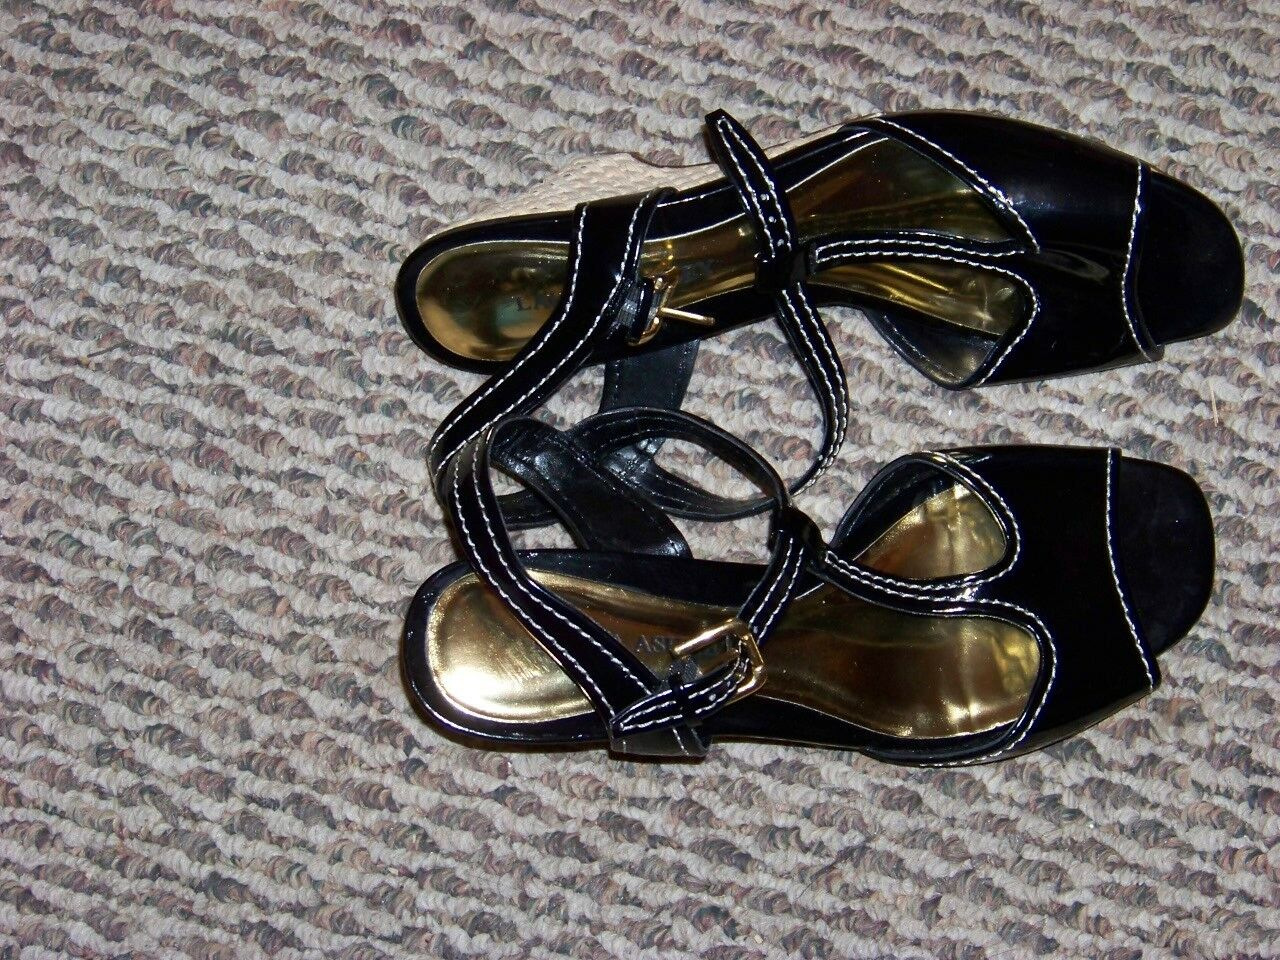 womnes patent laura ashley journey black patent womnes open toe t strap wedge shoes size 8 1/2 cf4be2